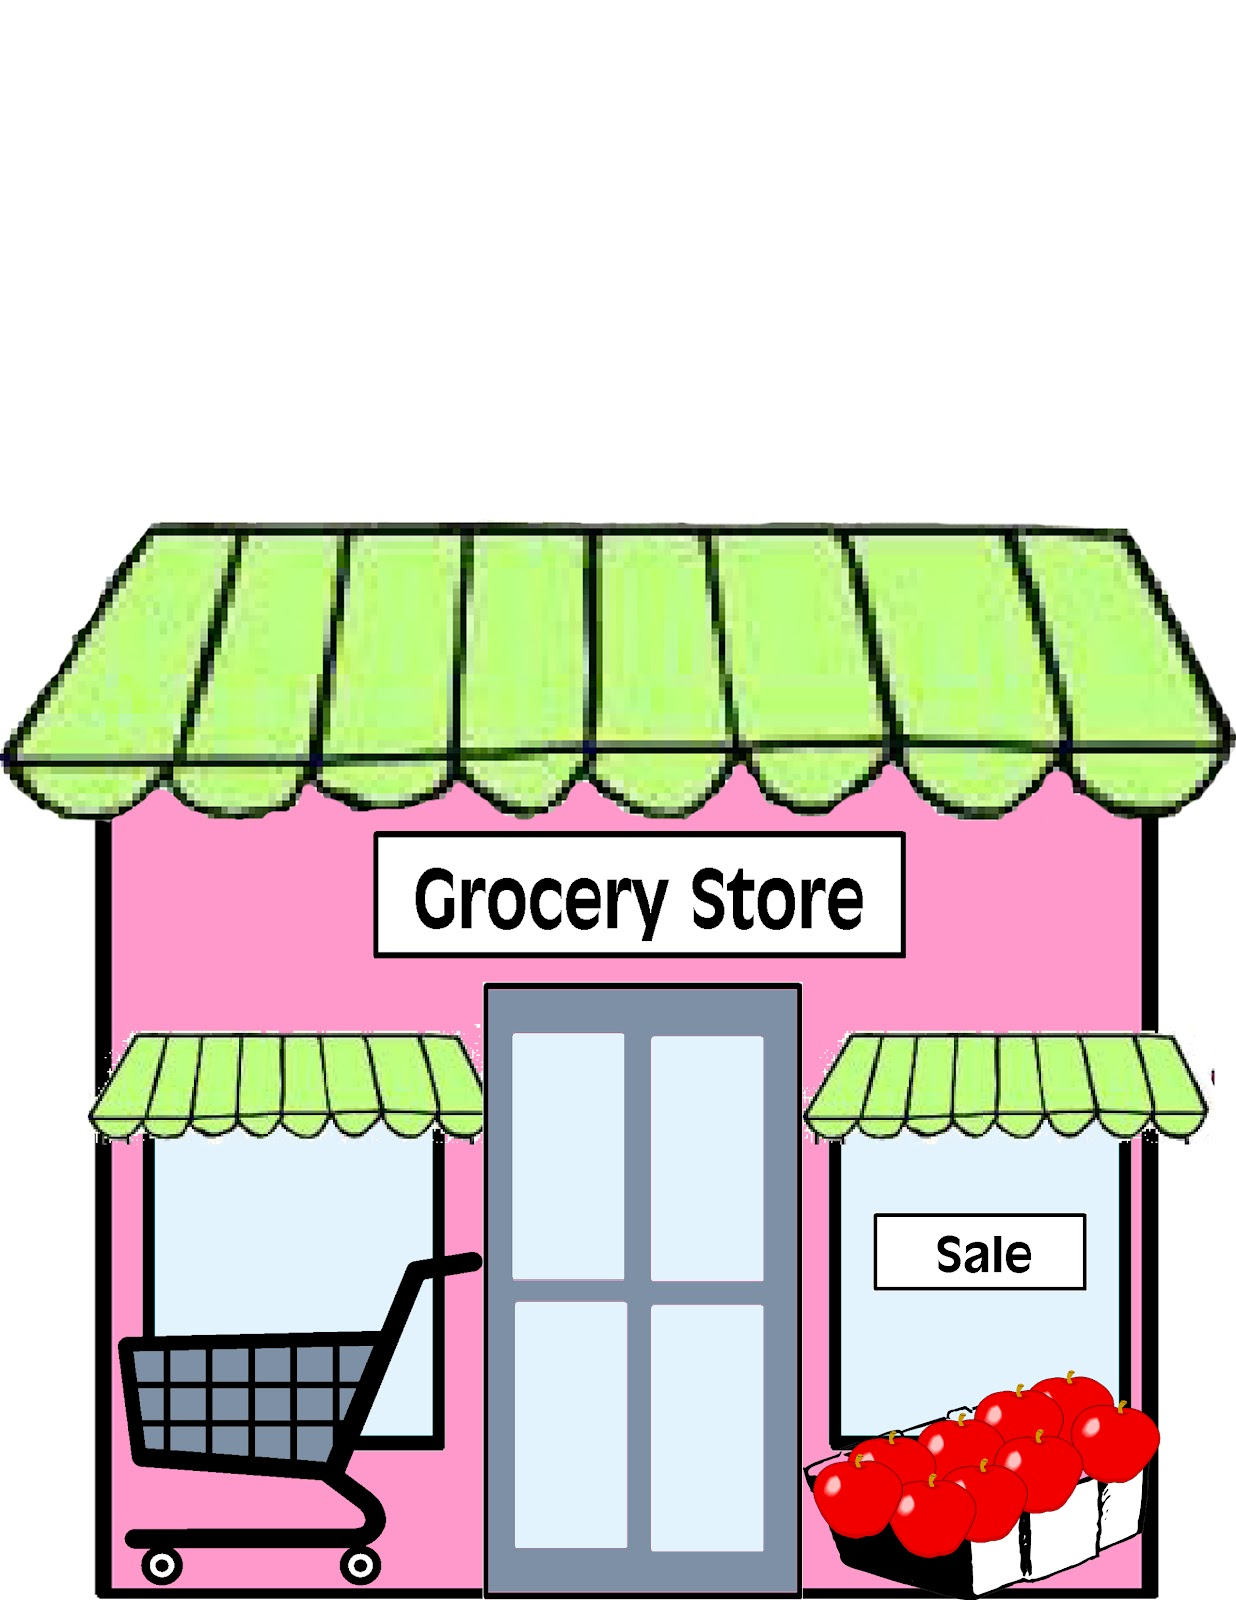 Mall clipart grocery store #10